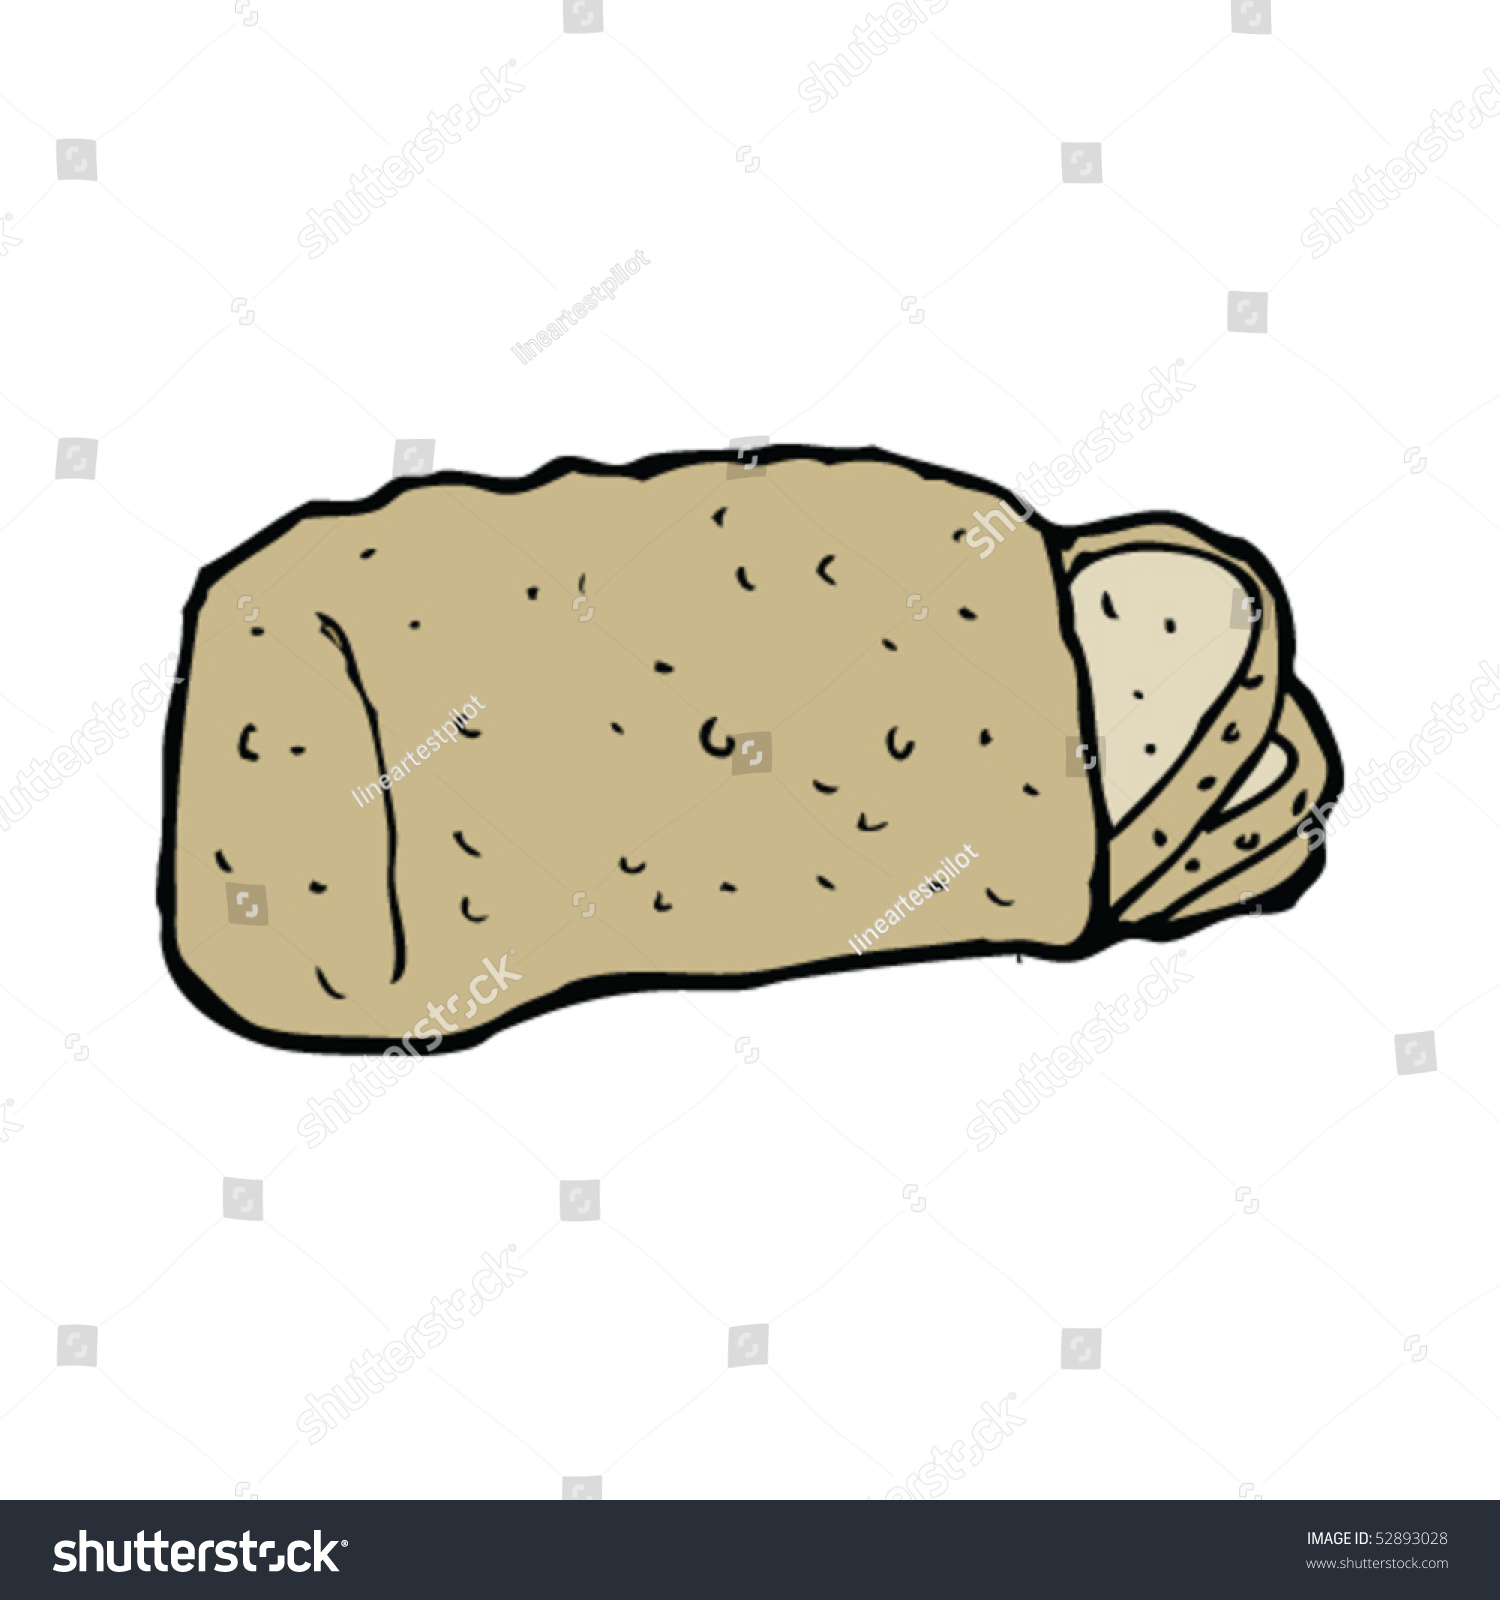 Uncategorized Loaf Of Bread Drawing loaf bread drawing stock vector 52893028 shutterstock of drawing